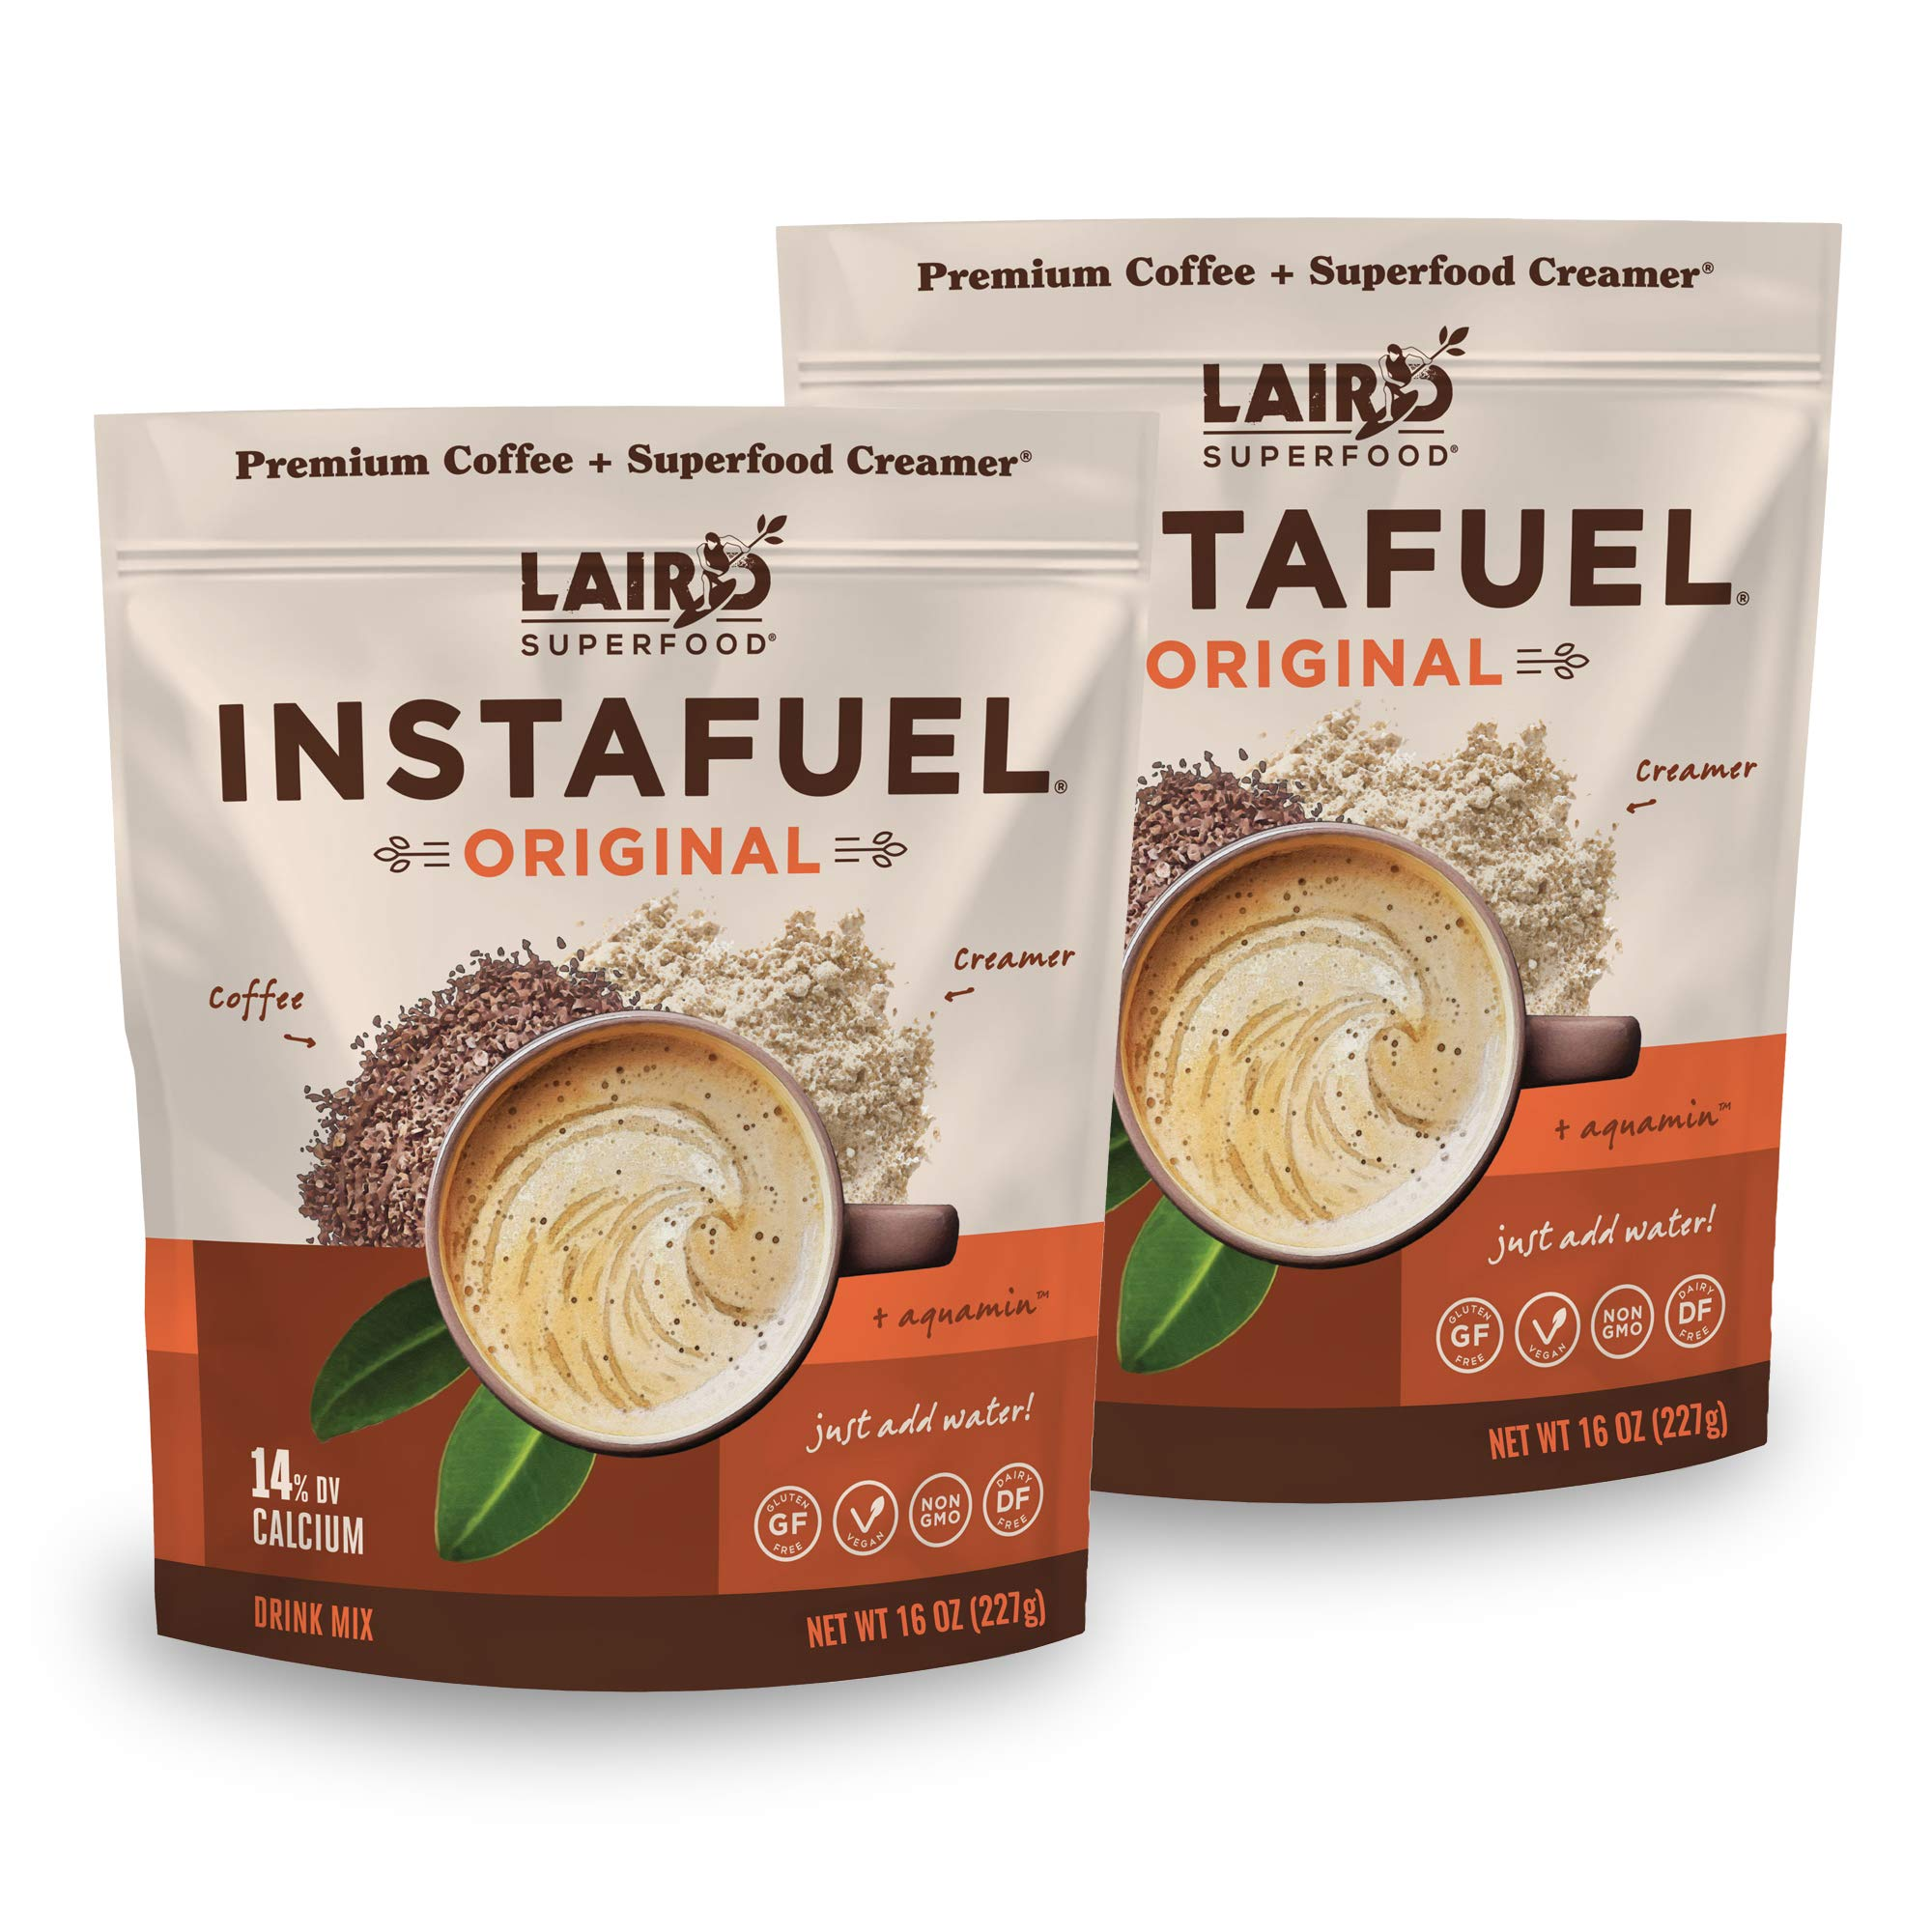 Laird Superfood Instafuel Instant Coffee, 2 lb by Laird Superfood